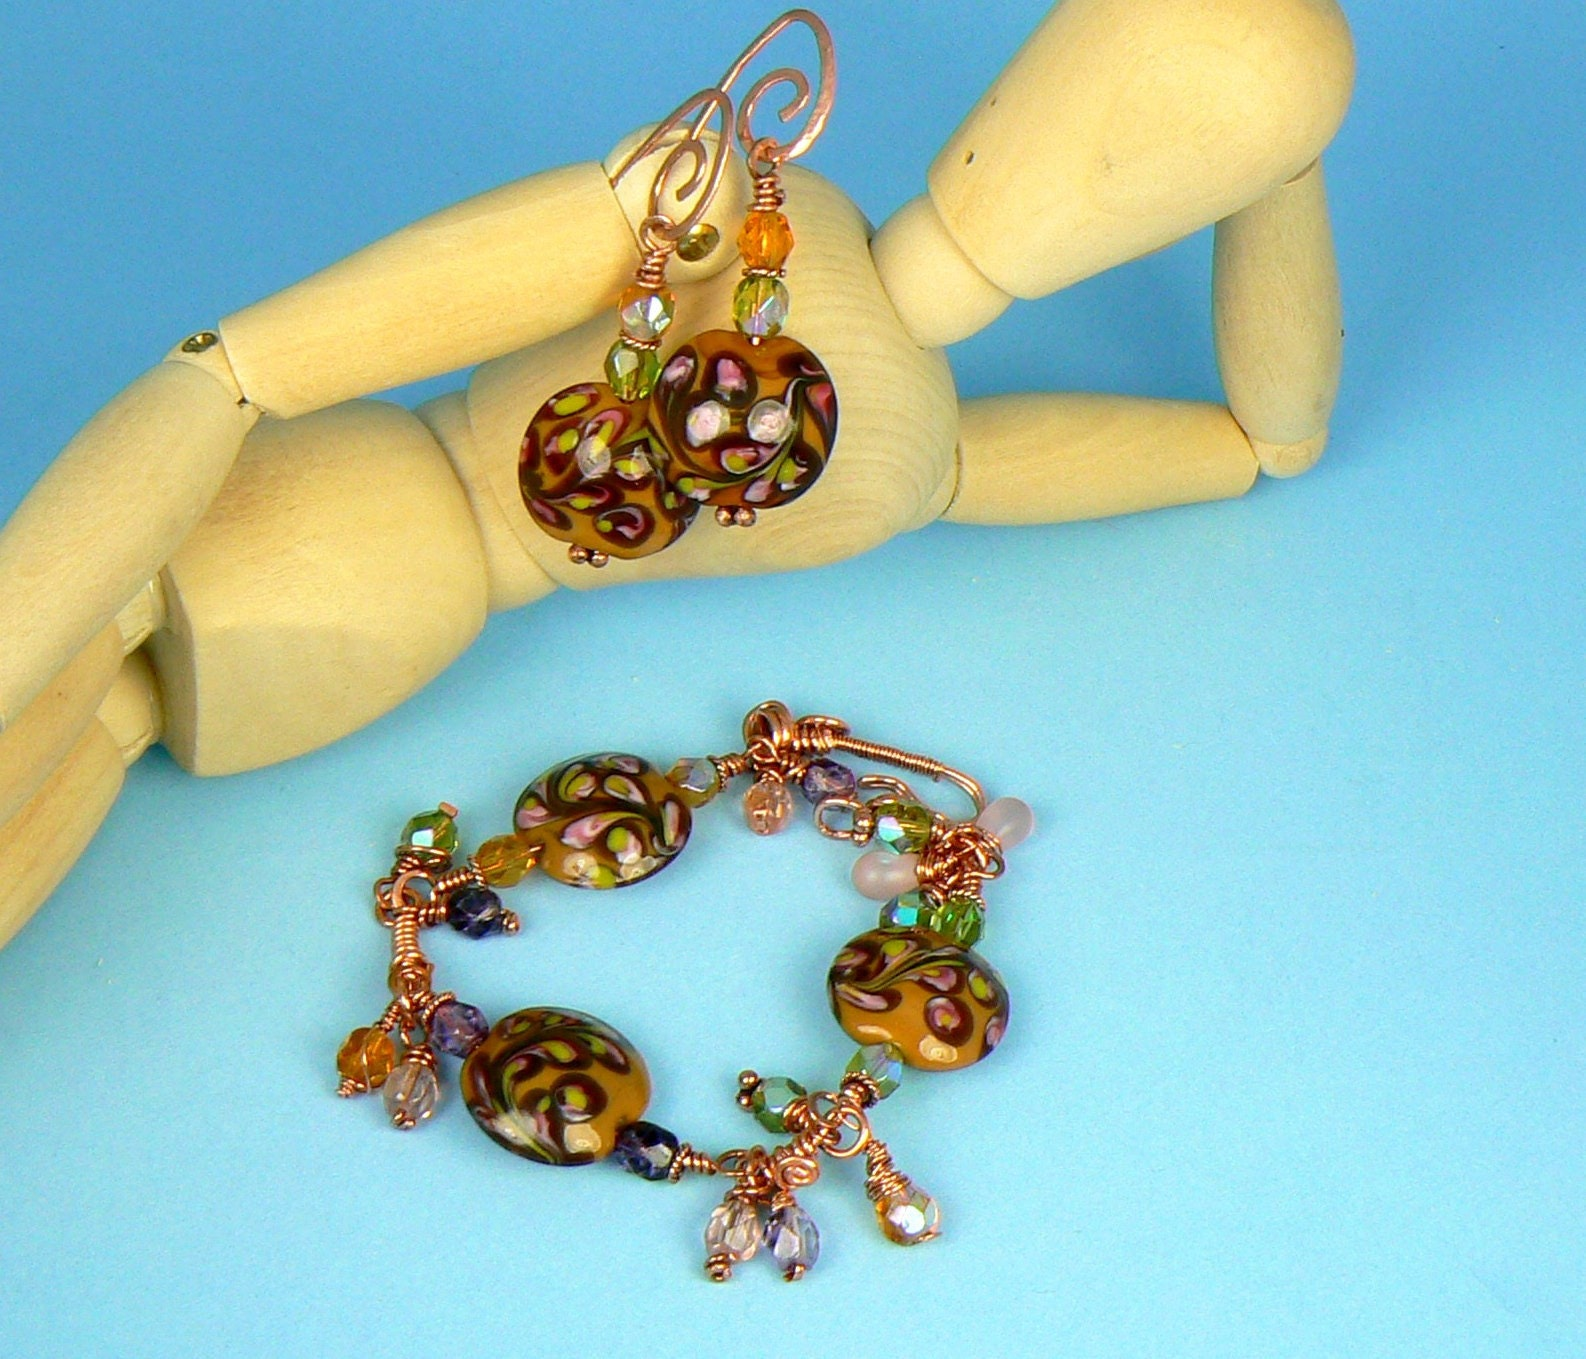 Caramel Rose~ooak lampwork czech crystal and copper bracelet & earring set by ElysianFields from etsy.com